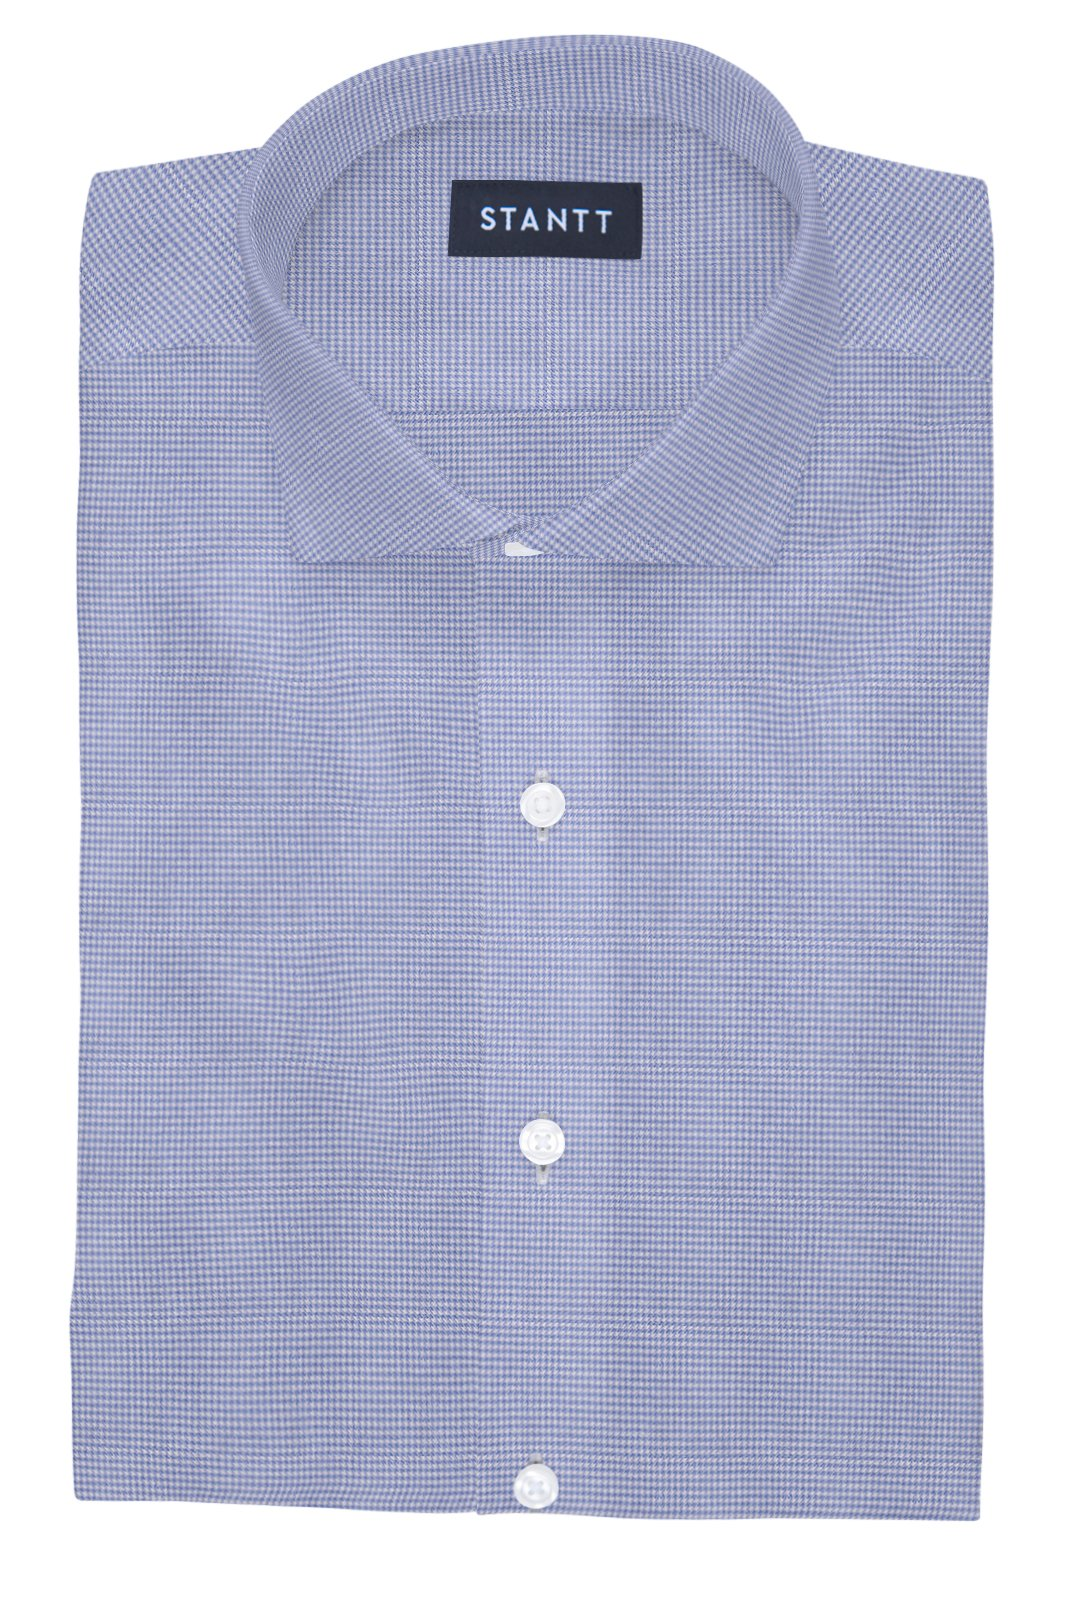 Performance Light Blue Houndstooth: Cutaway Collar, French Cuff